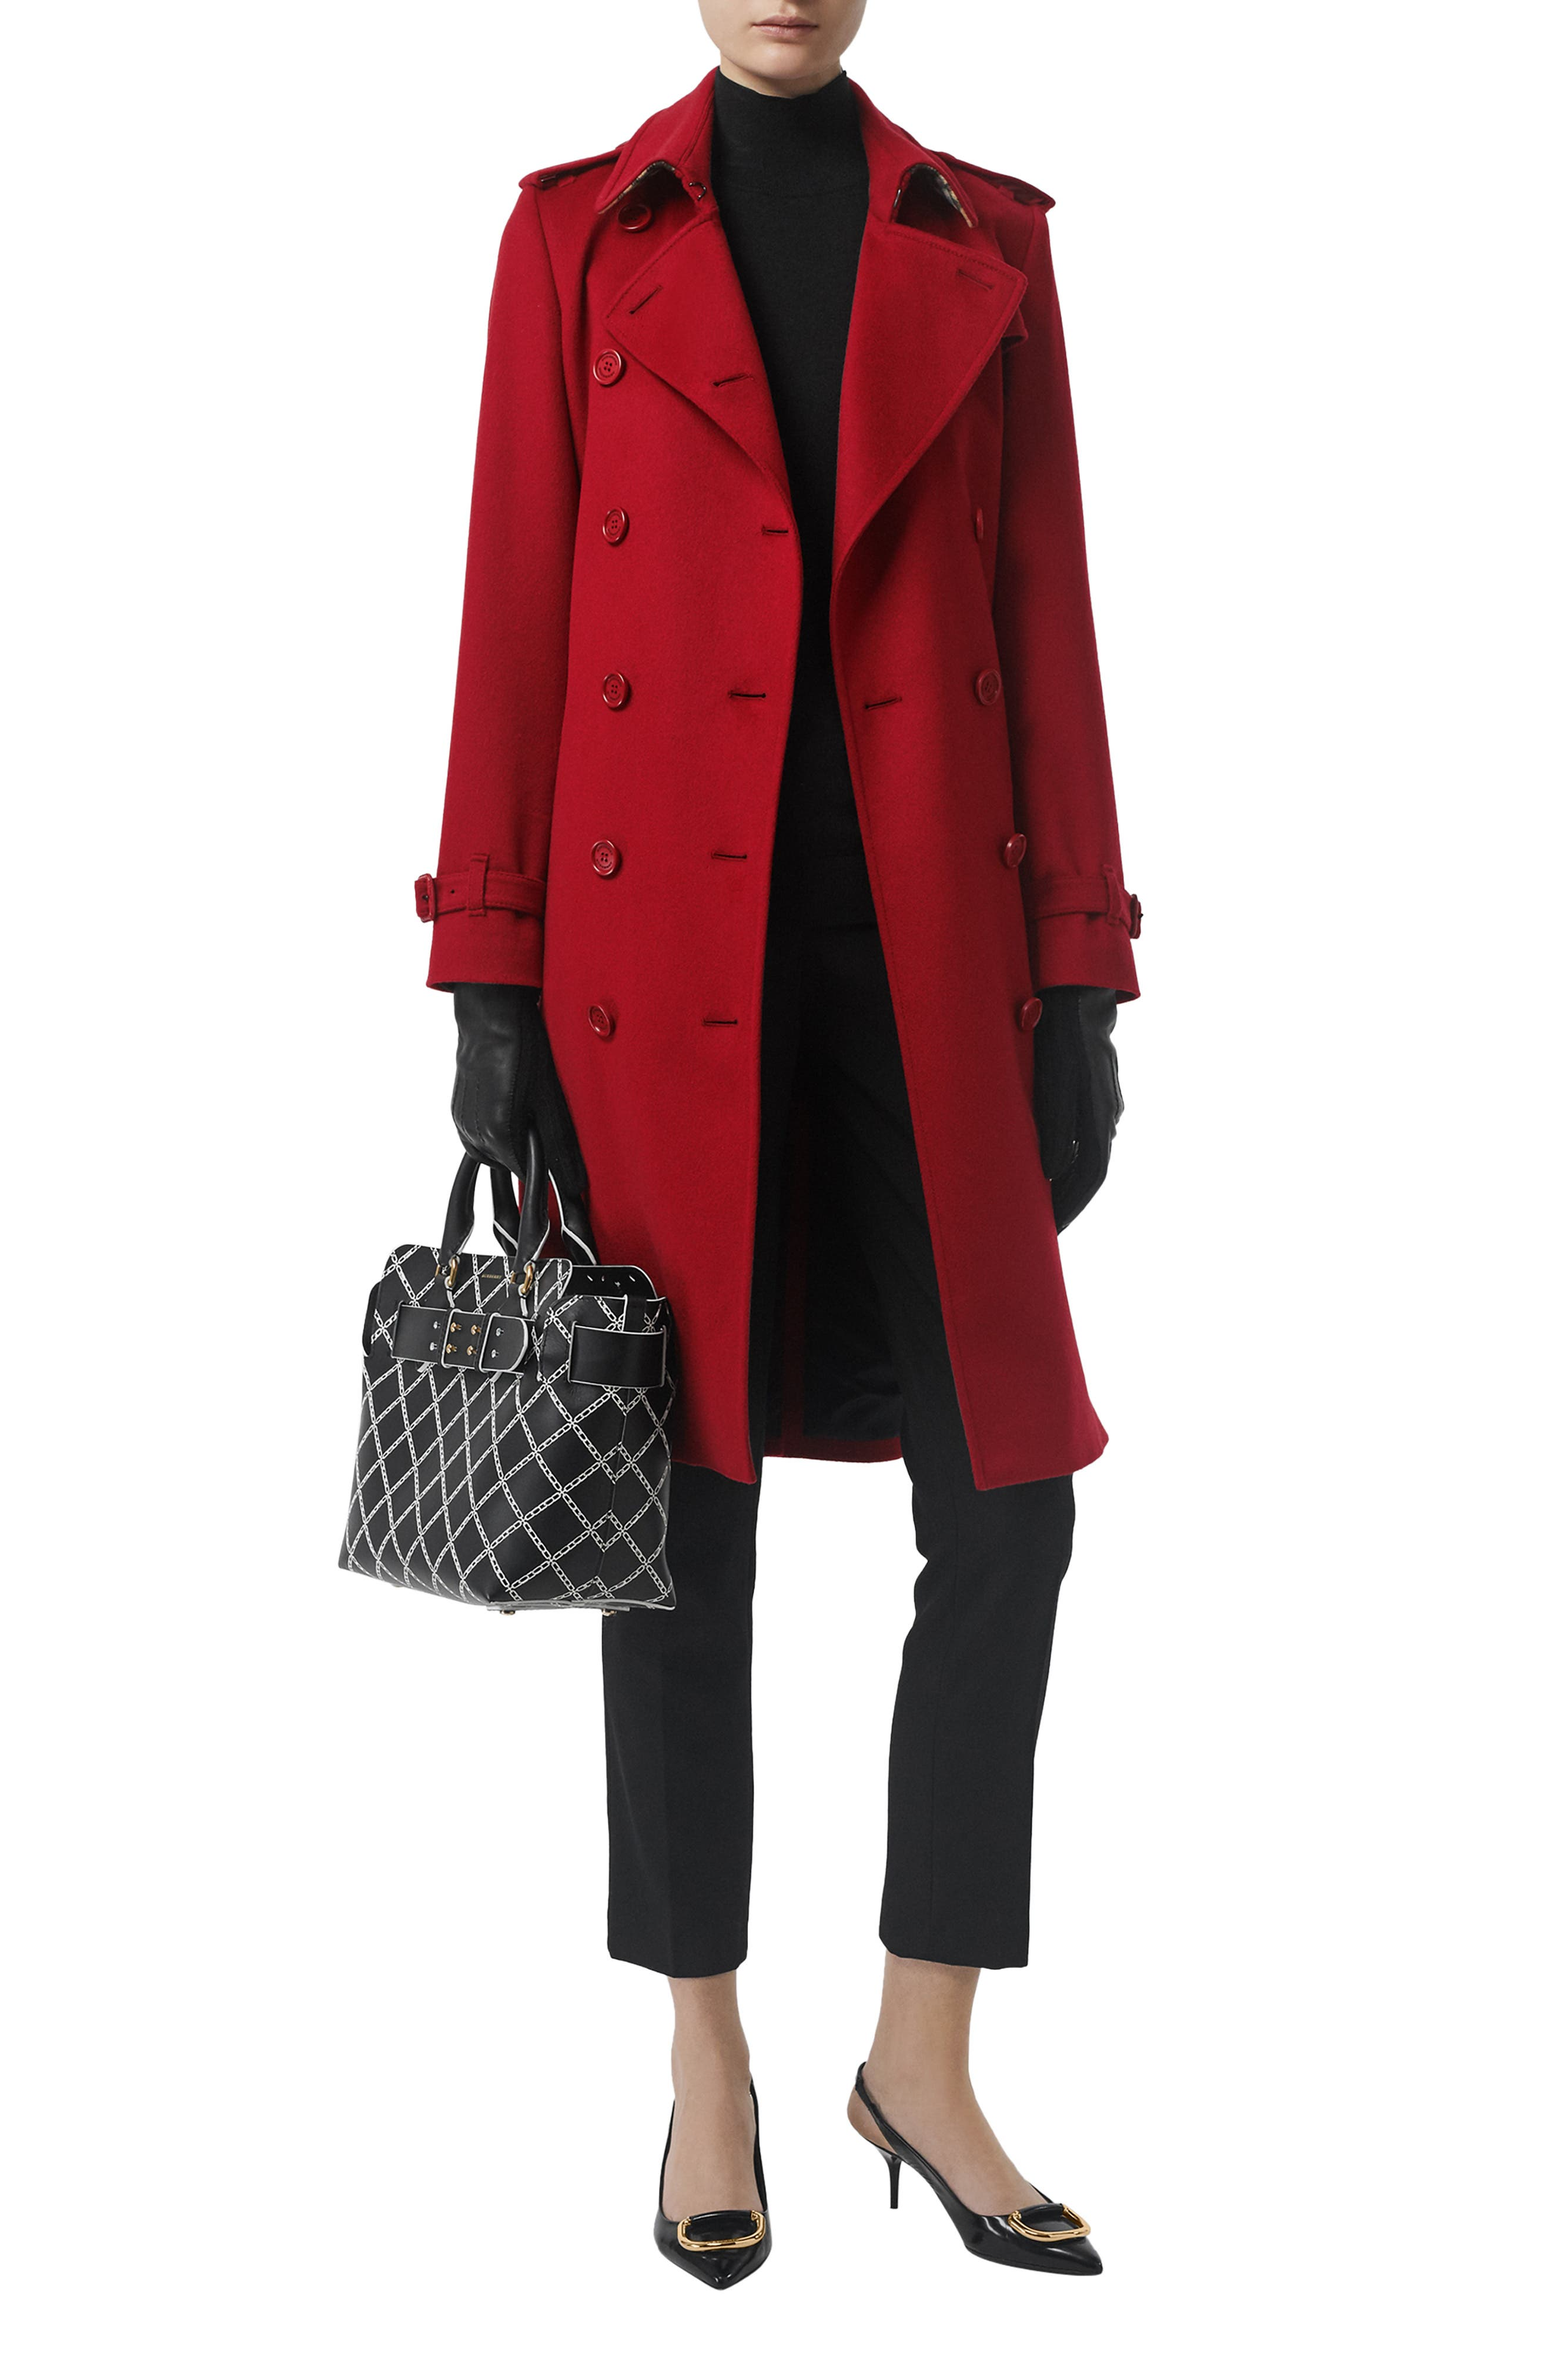 BURBERRY, Kensington Cashmere Trench Coat, Alternate thumbnail 7, color, PARADE RED